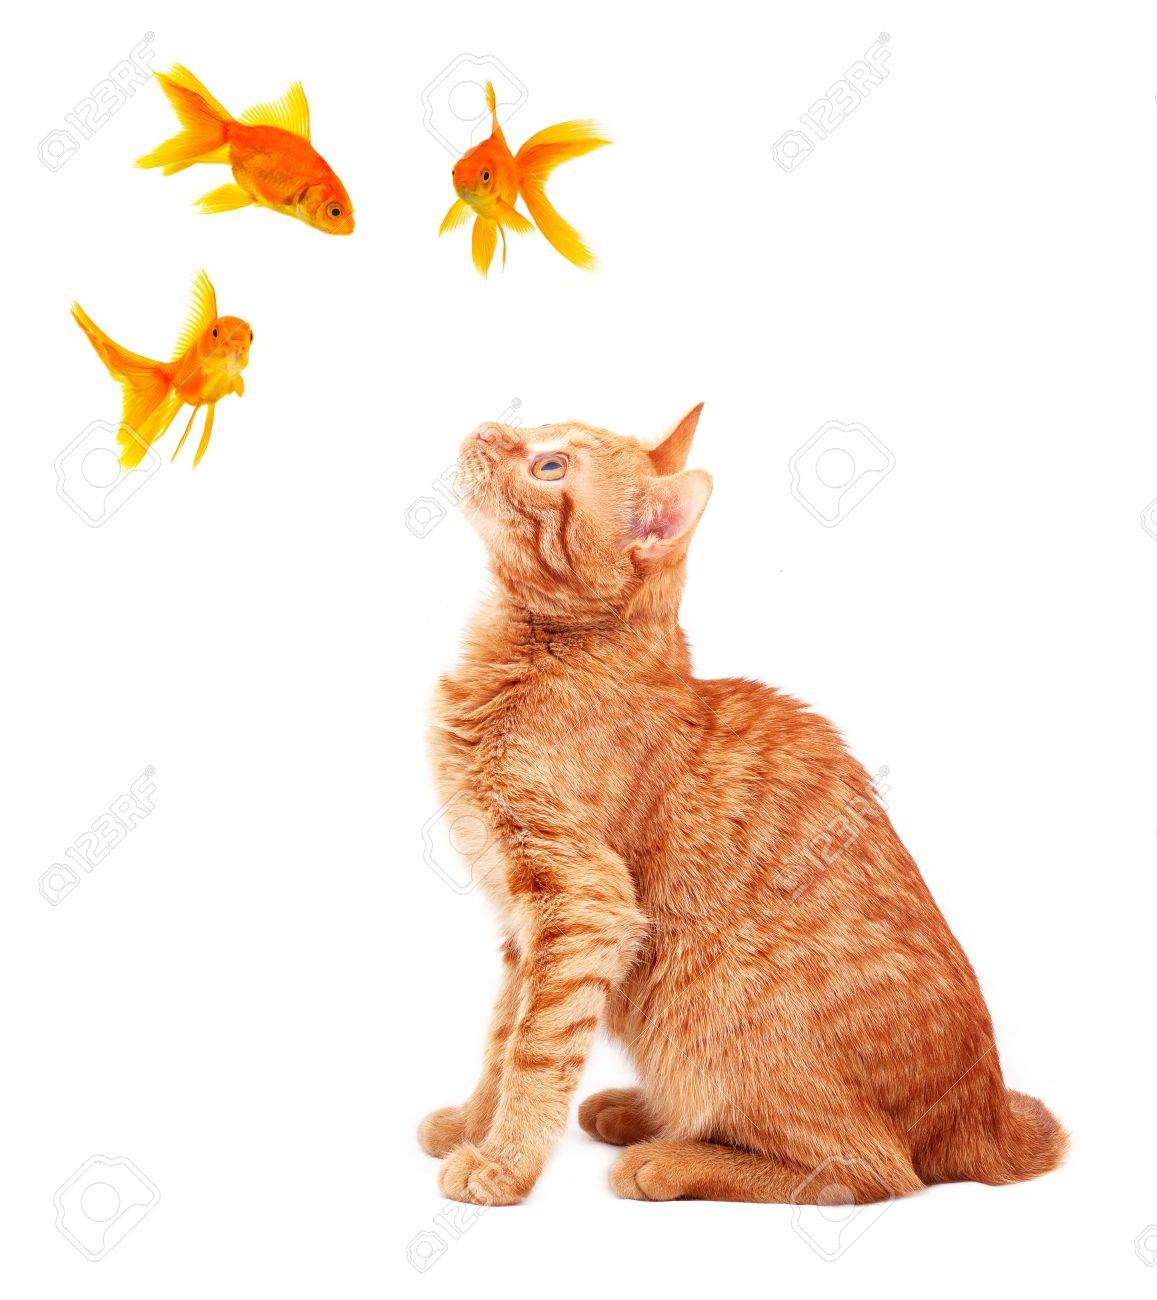 Cat playing with goldfishes isolated on white background Stock Photo - 6557378